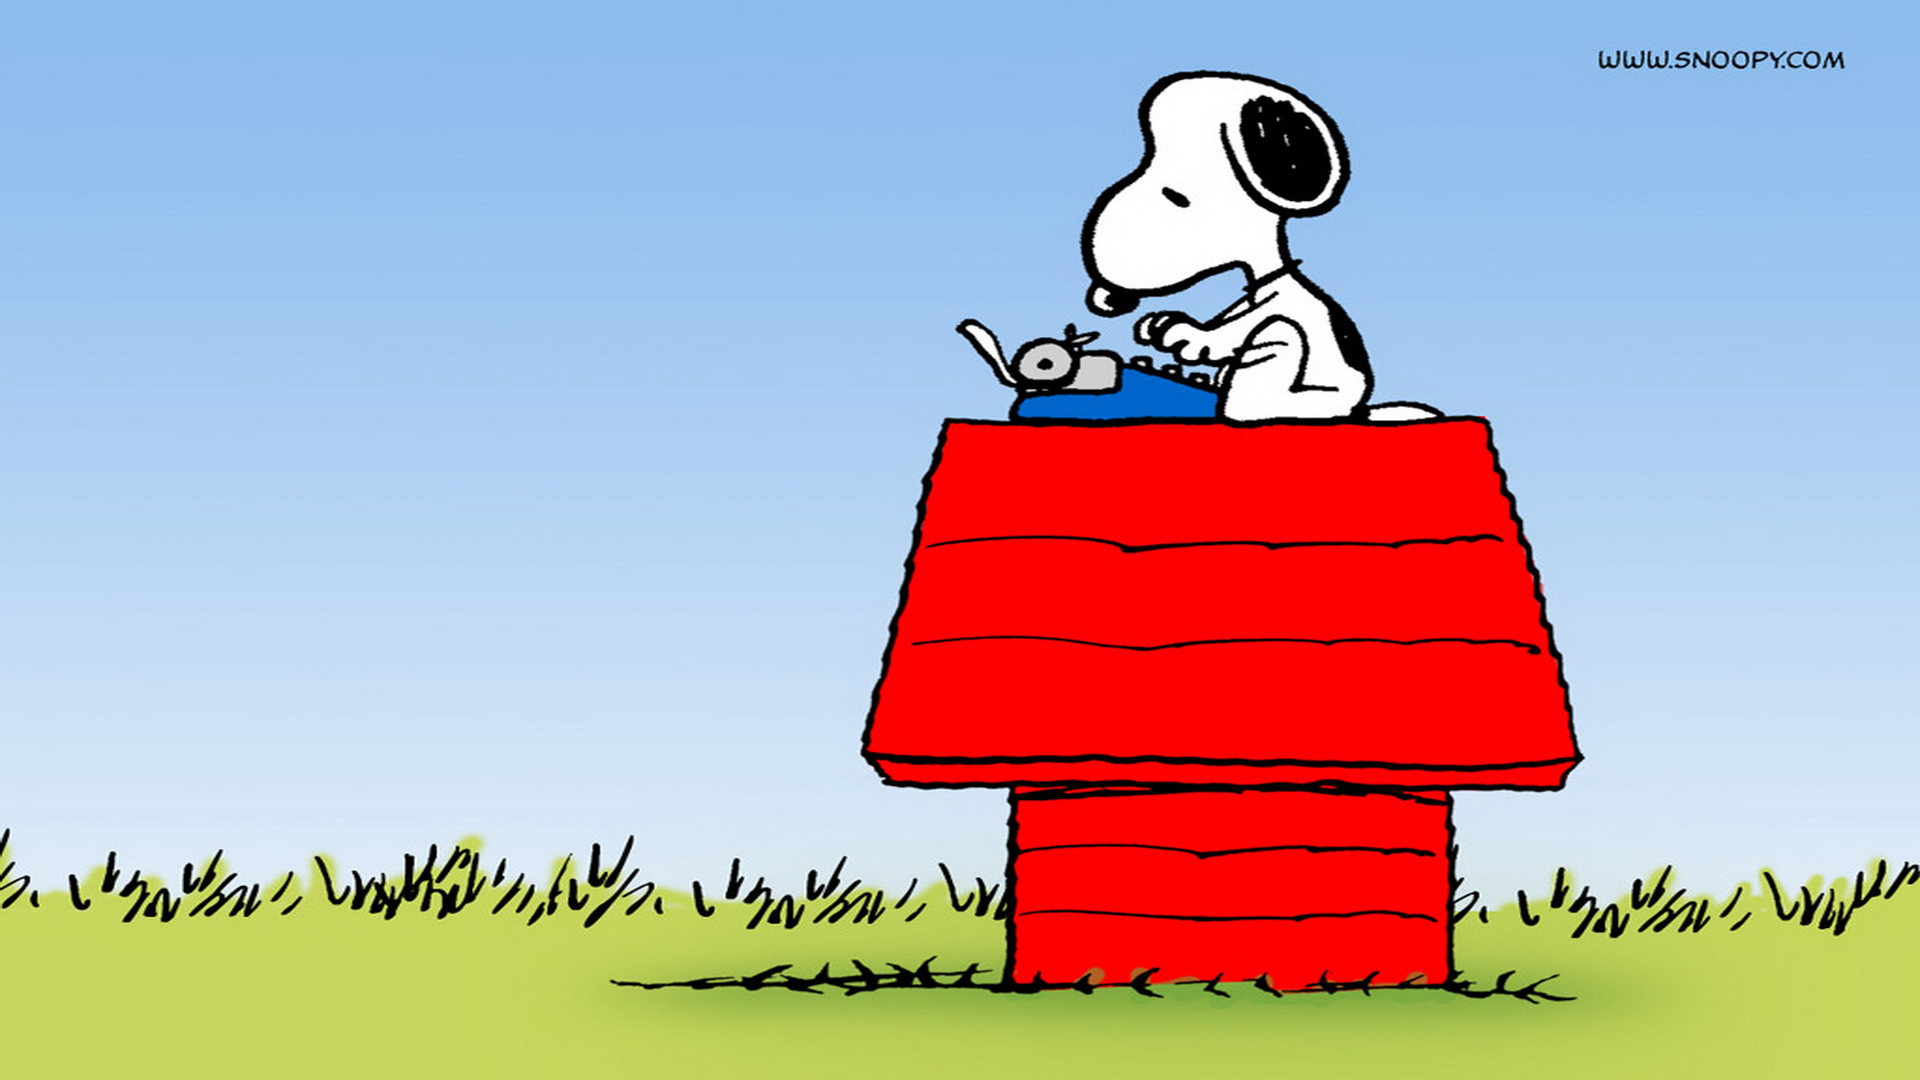 snoopy hd wallpaper | background image | 1920x1080 | id:436482